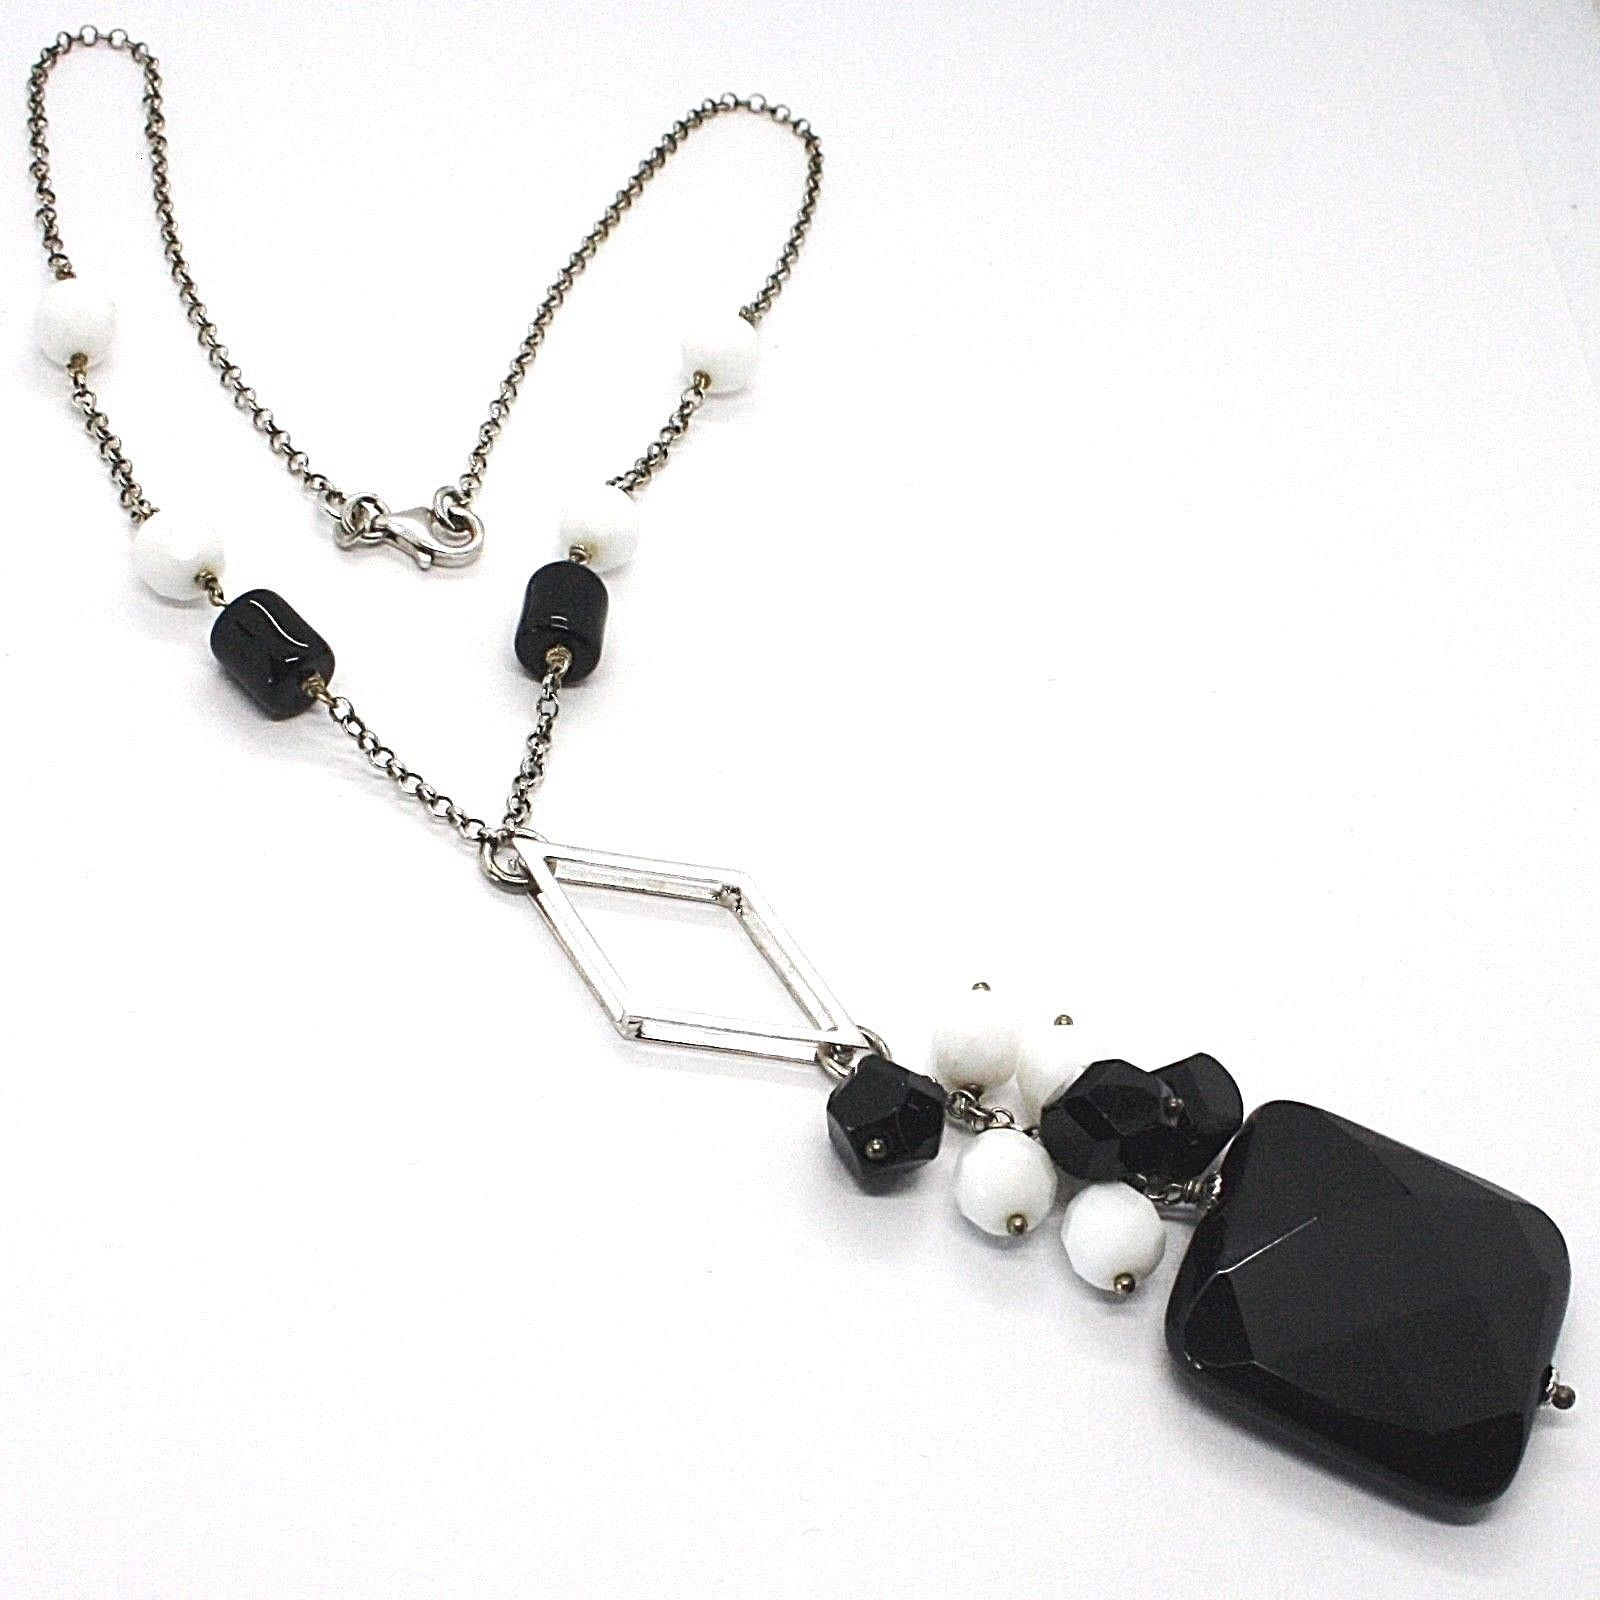 SILVER 925 NECKLACE, ONYX BLACK, PENDANT BUNCH, 17 11/16in, CHAIN ROLO'